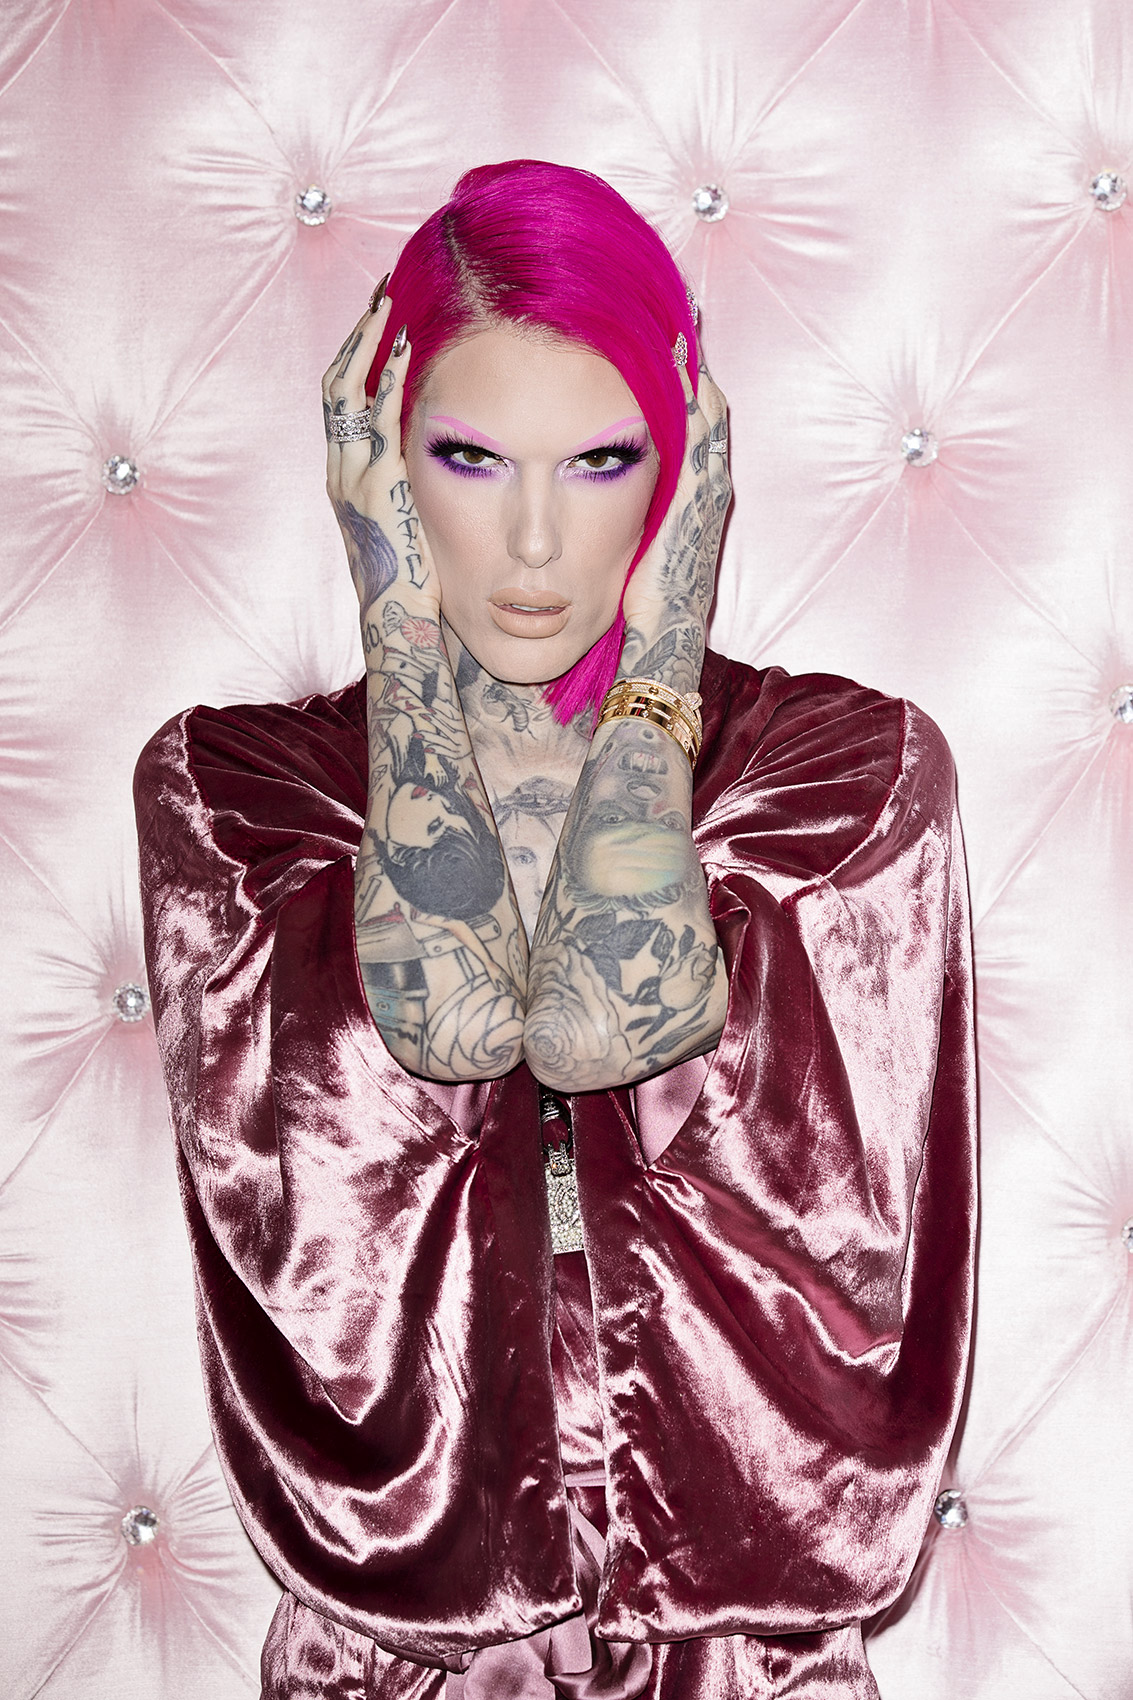 04_Kimberly_Genevieve_Jeffree_Star